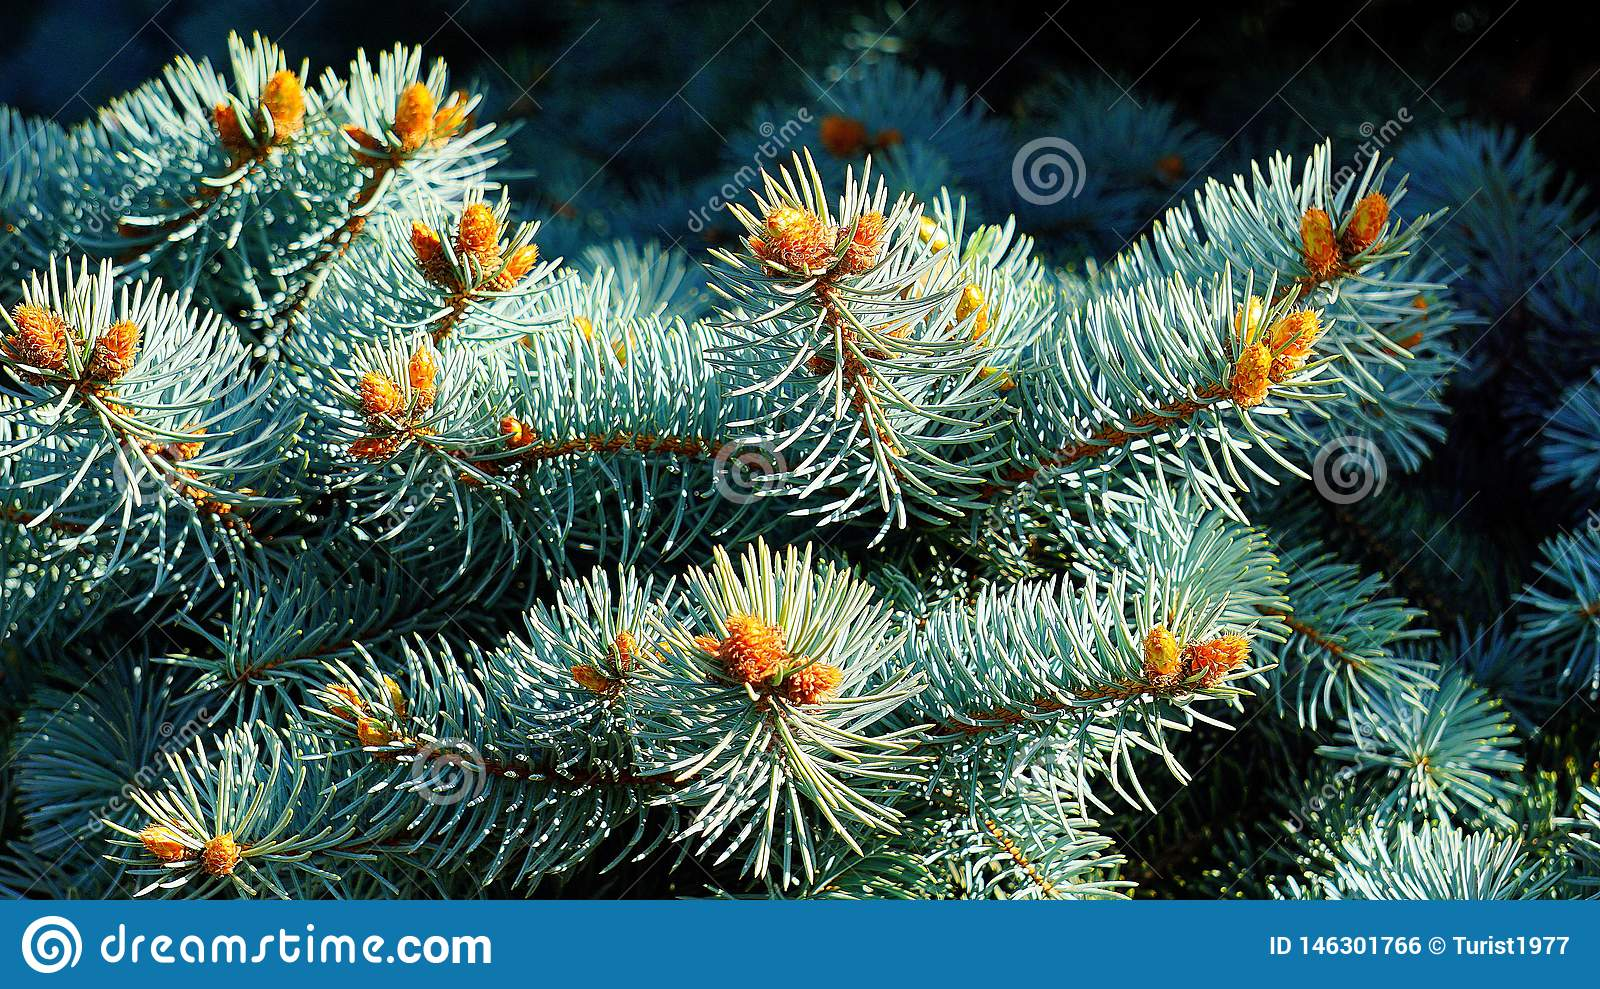 The Branches Of The Blue Christmas Tree In The Spring Are Very Beautiful. Stock Photo - Image of ...